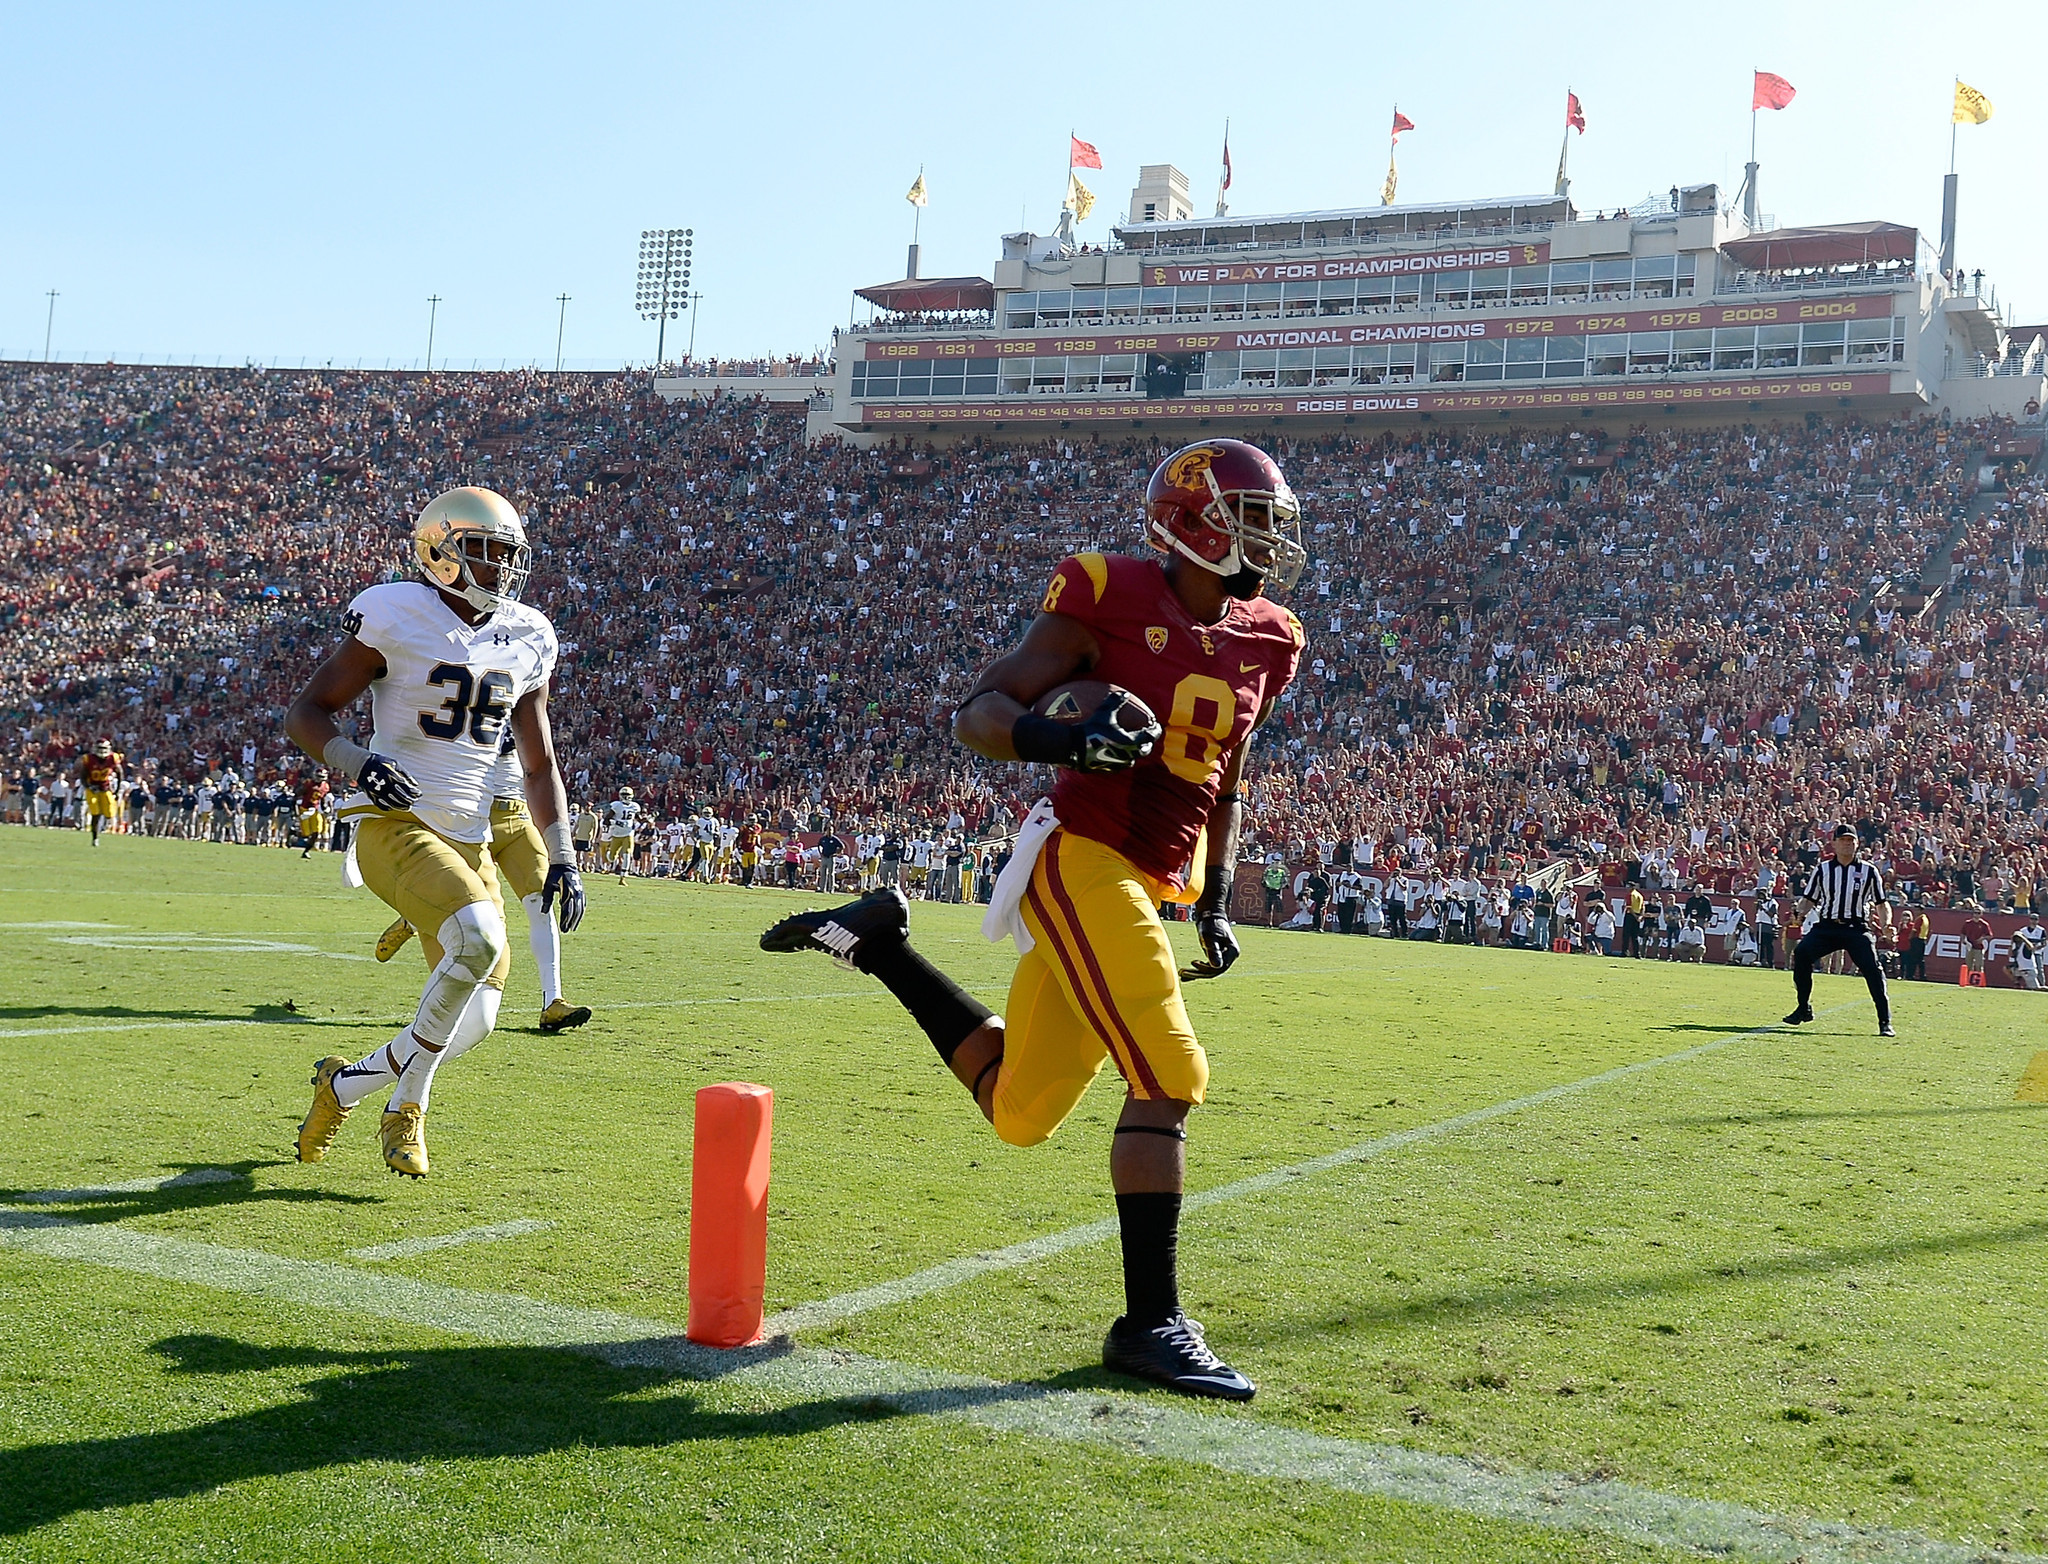 USC players race after Christmas Day practice - Daily Press